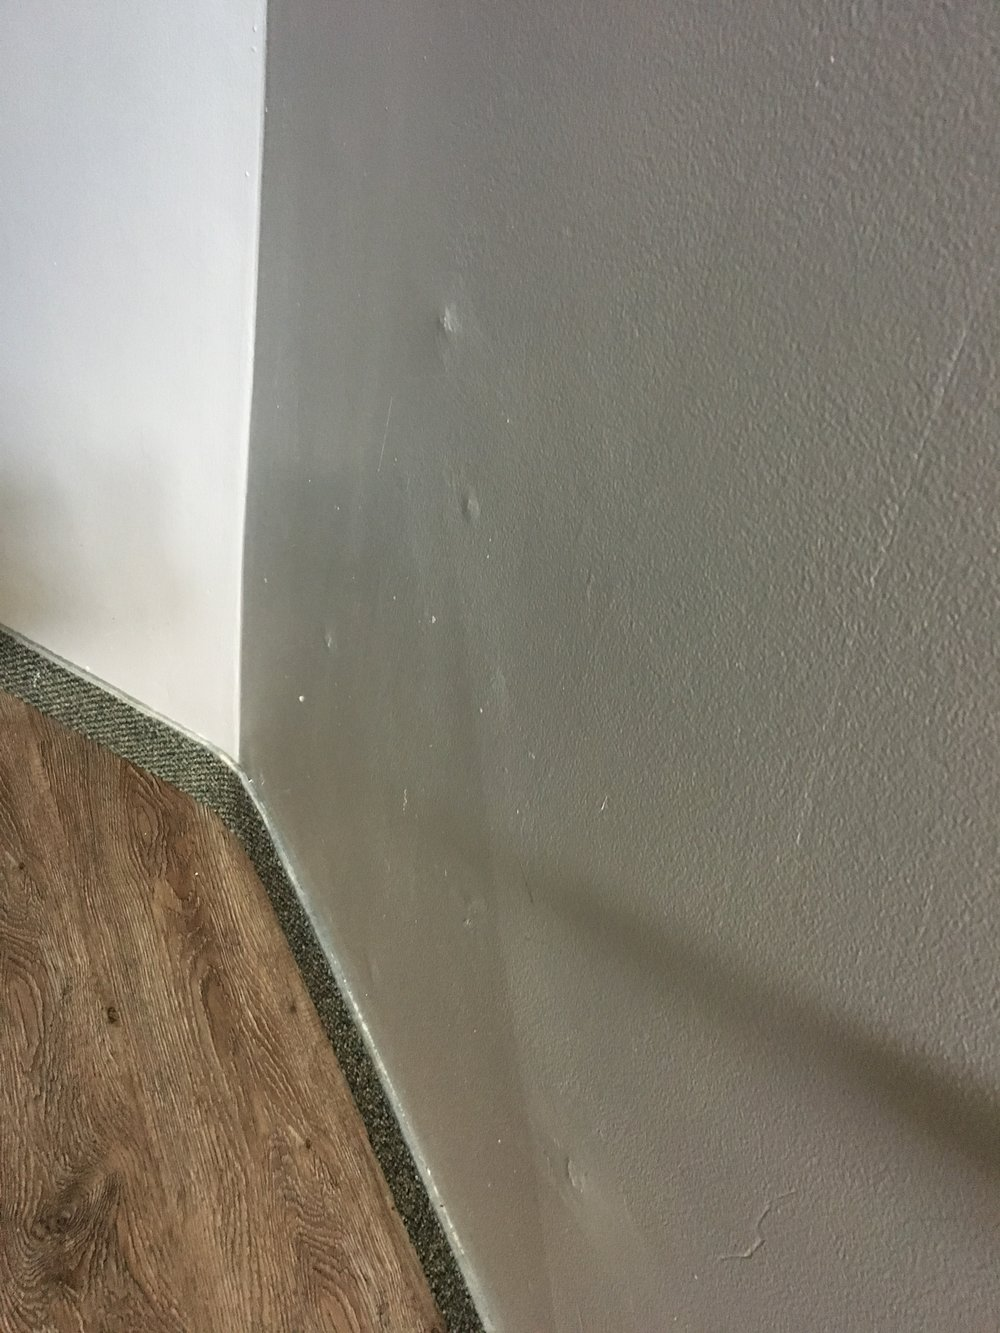 "Multiple points pushing OUT from moisture seepage, here in the front East stairwell, plus evidence the drywall was repaired years ago ... thus this is a longstanding, ongoing issue that will not ""go away"" if we just ignore it."